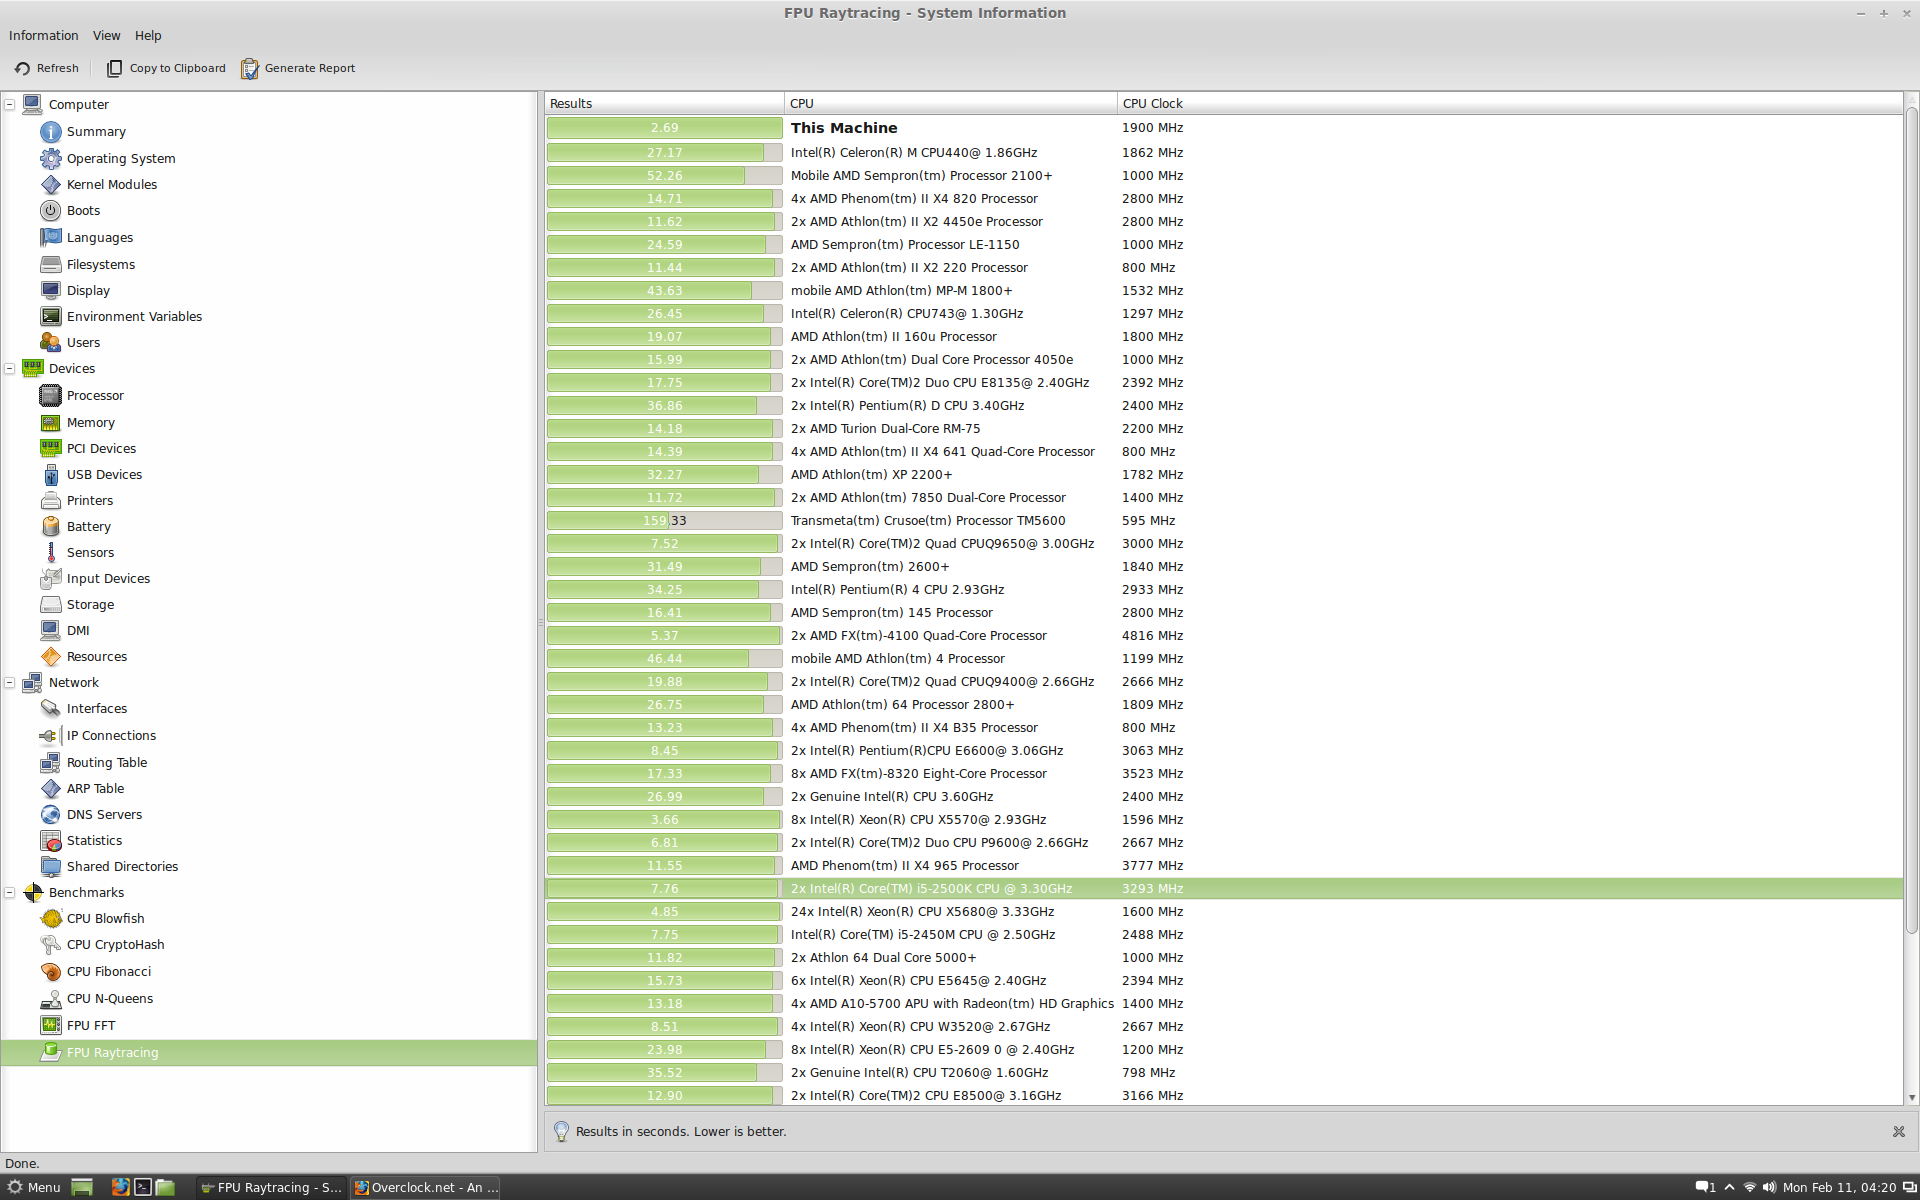 FPU Raytracing compared to stock  (4.6GHZ, offset Vcore) , Linux Mint 14